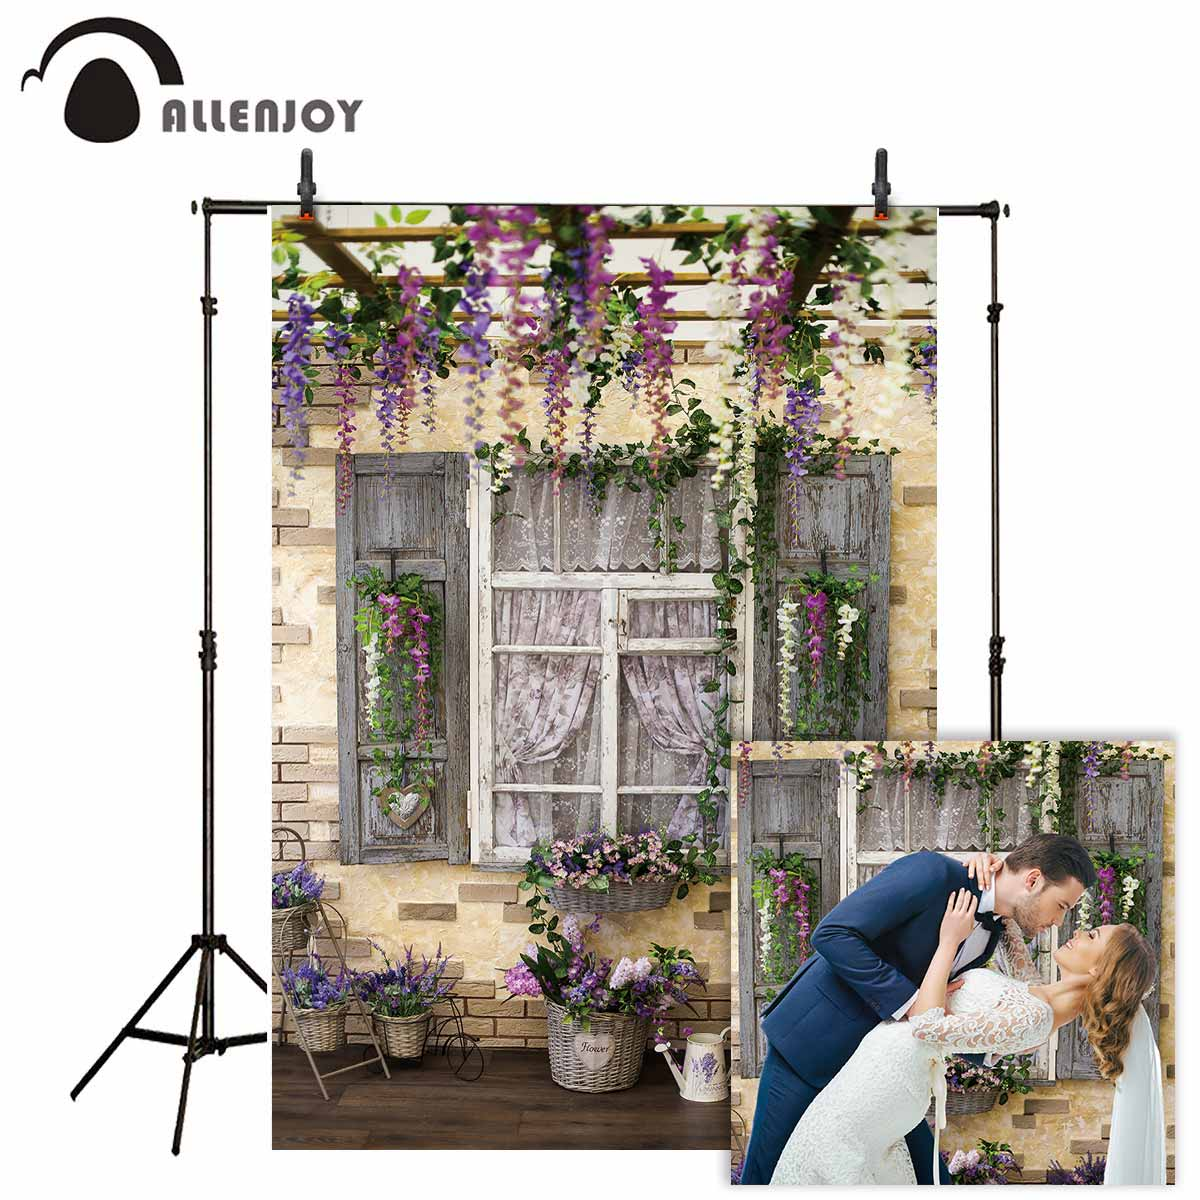 Allenjoy Backgrounds For Photography Studio Interior Window Curtain Wedding Backdrops Professional Photography Display Photocall